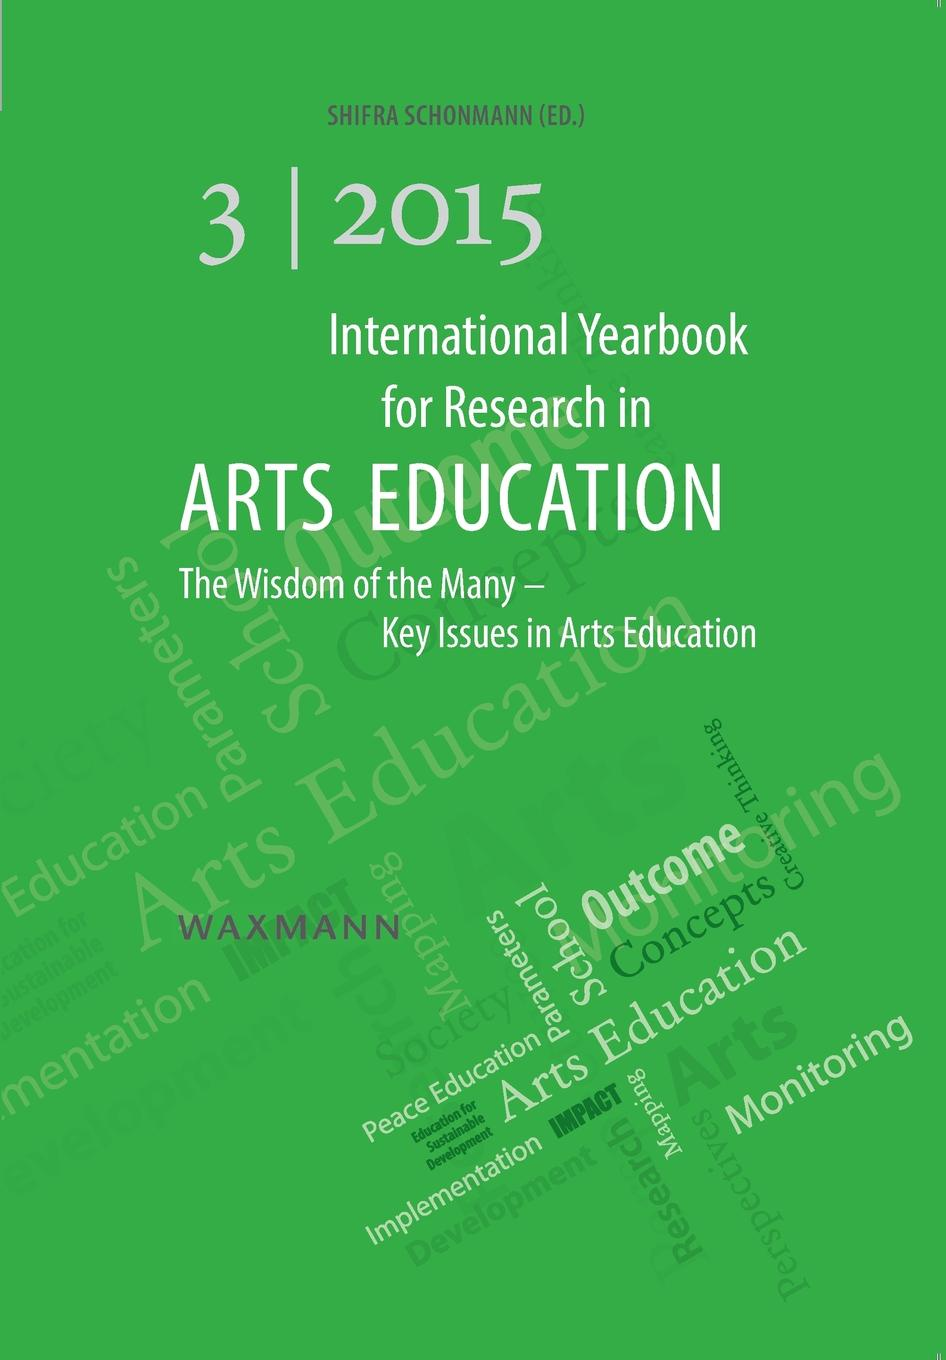 International Yearbook for Research in Arts Education 3/2015 european decorative arts